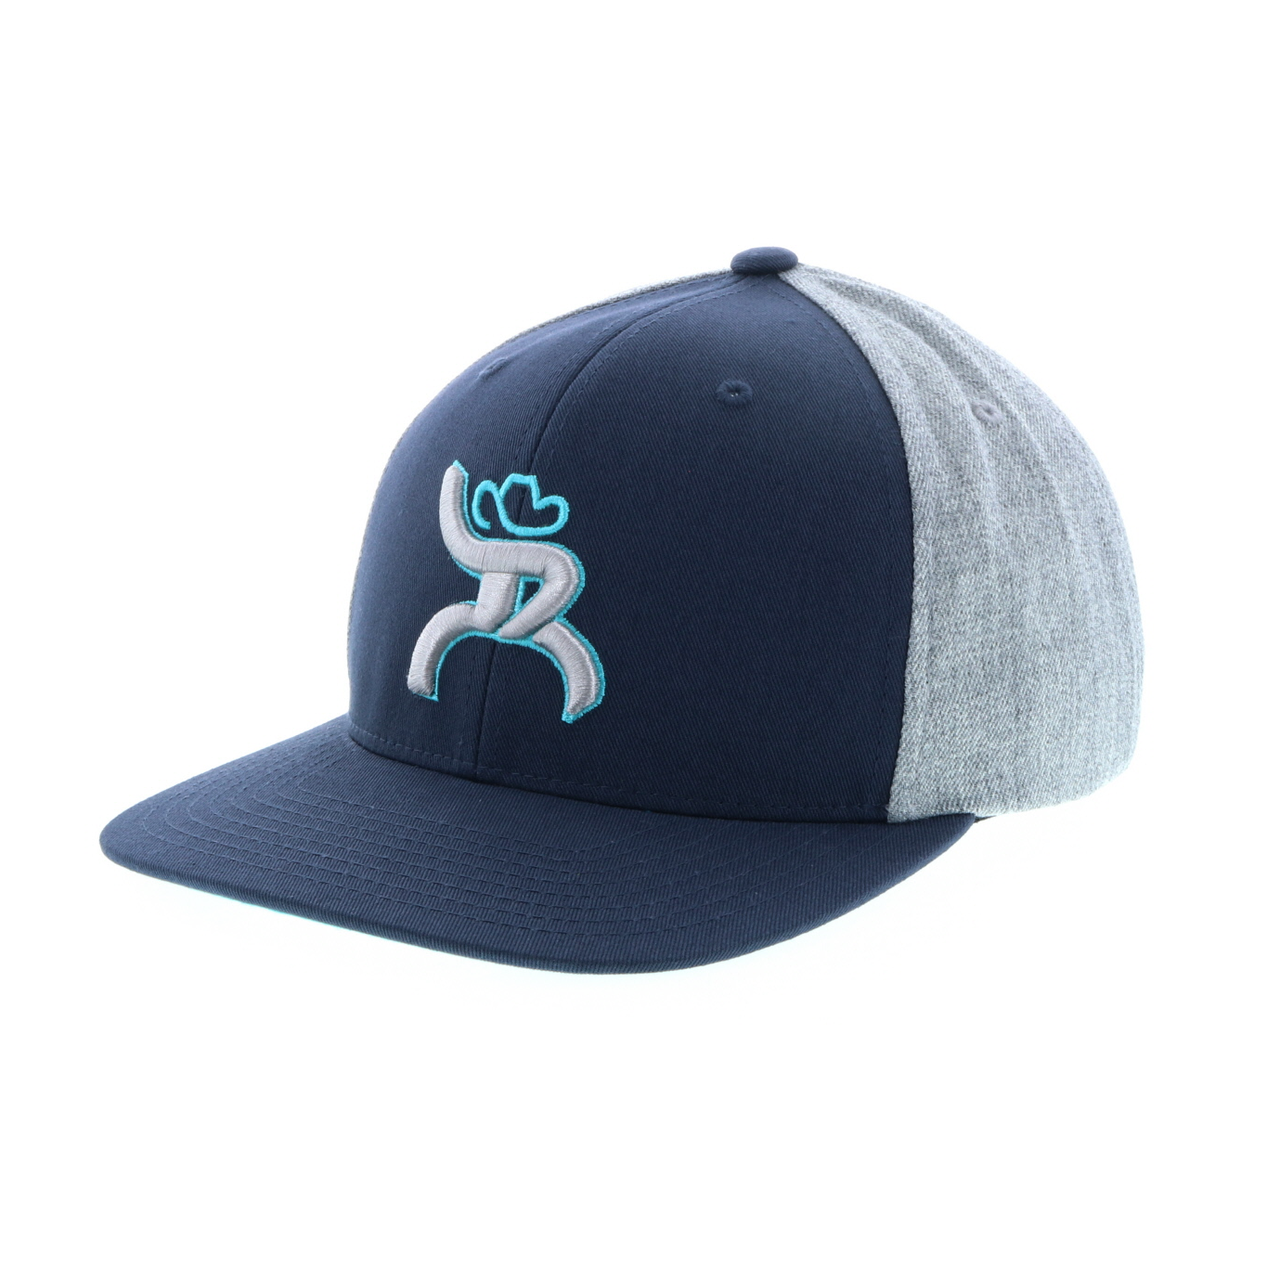 "Hooey Brands ""Hawk"" Roughy Snapback Navy/Grey Cap"